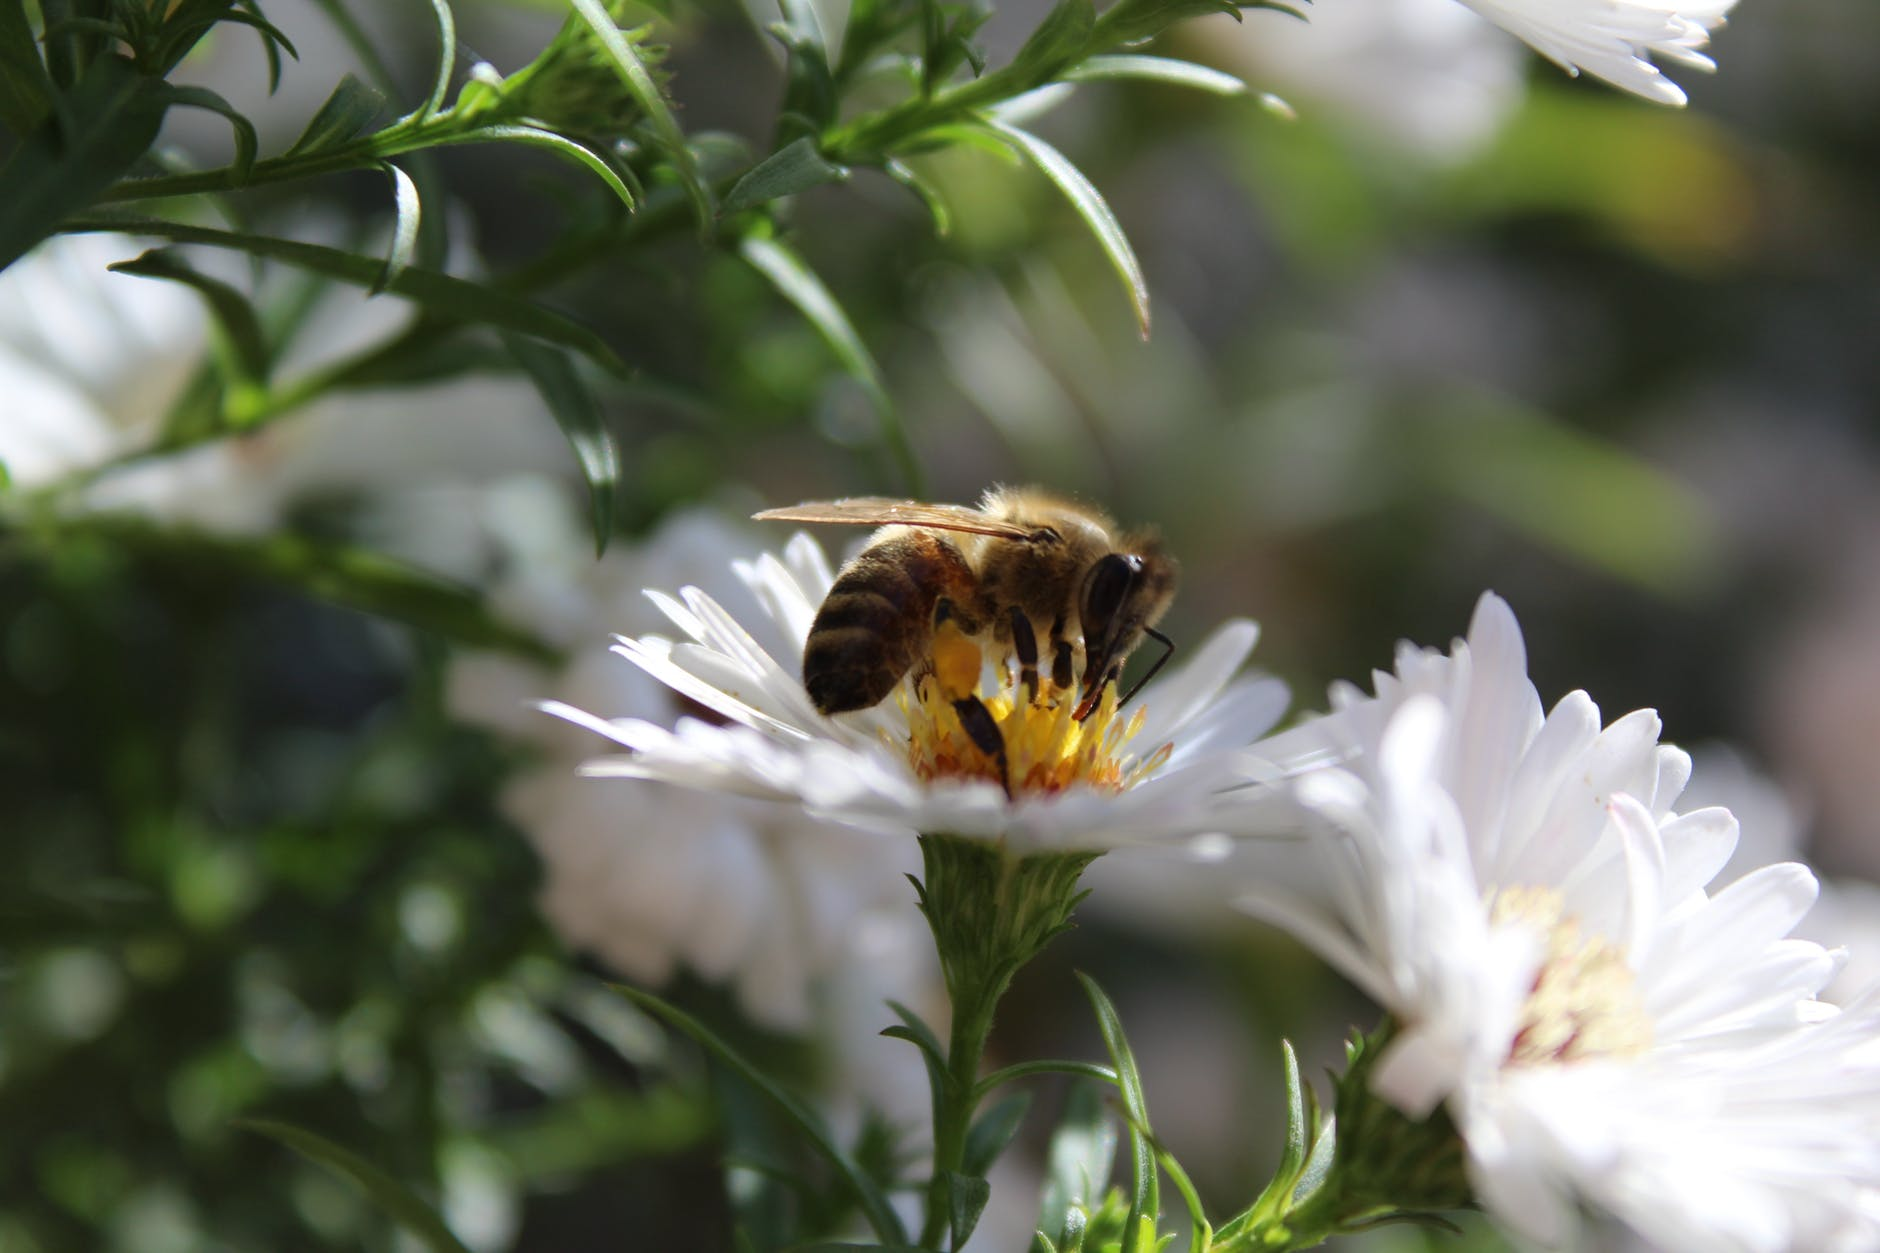 Honey bee sitting on white flower